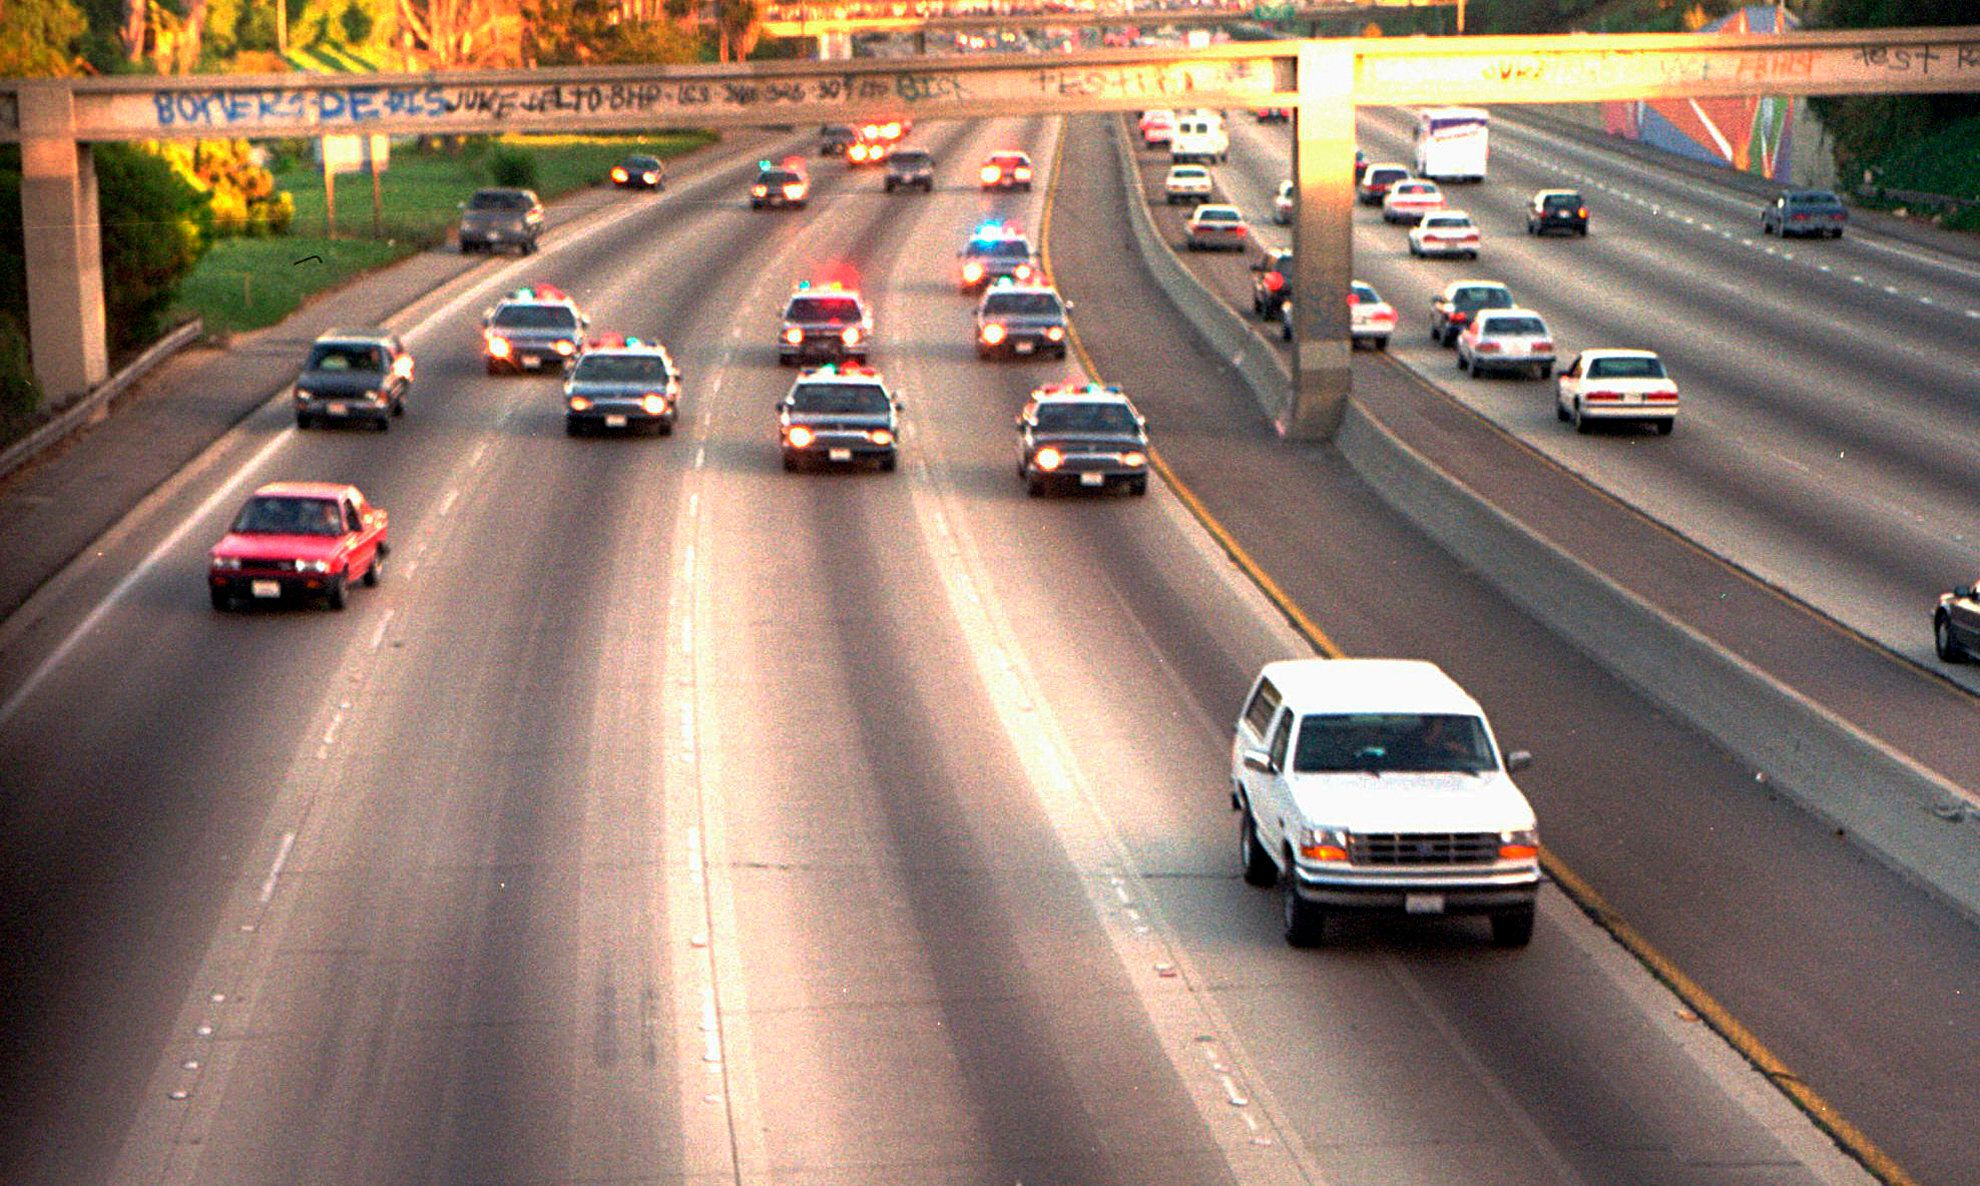 O.J. Simpson is trailed by LAPD cars as it travels along a California freeway.